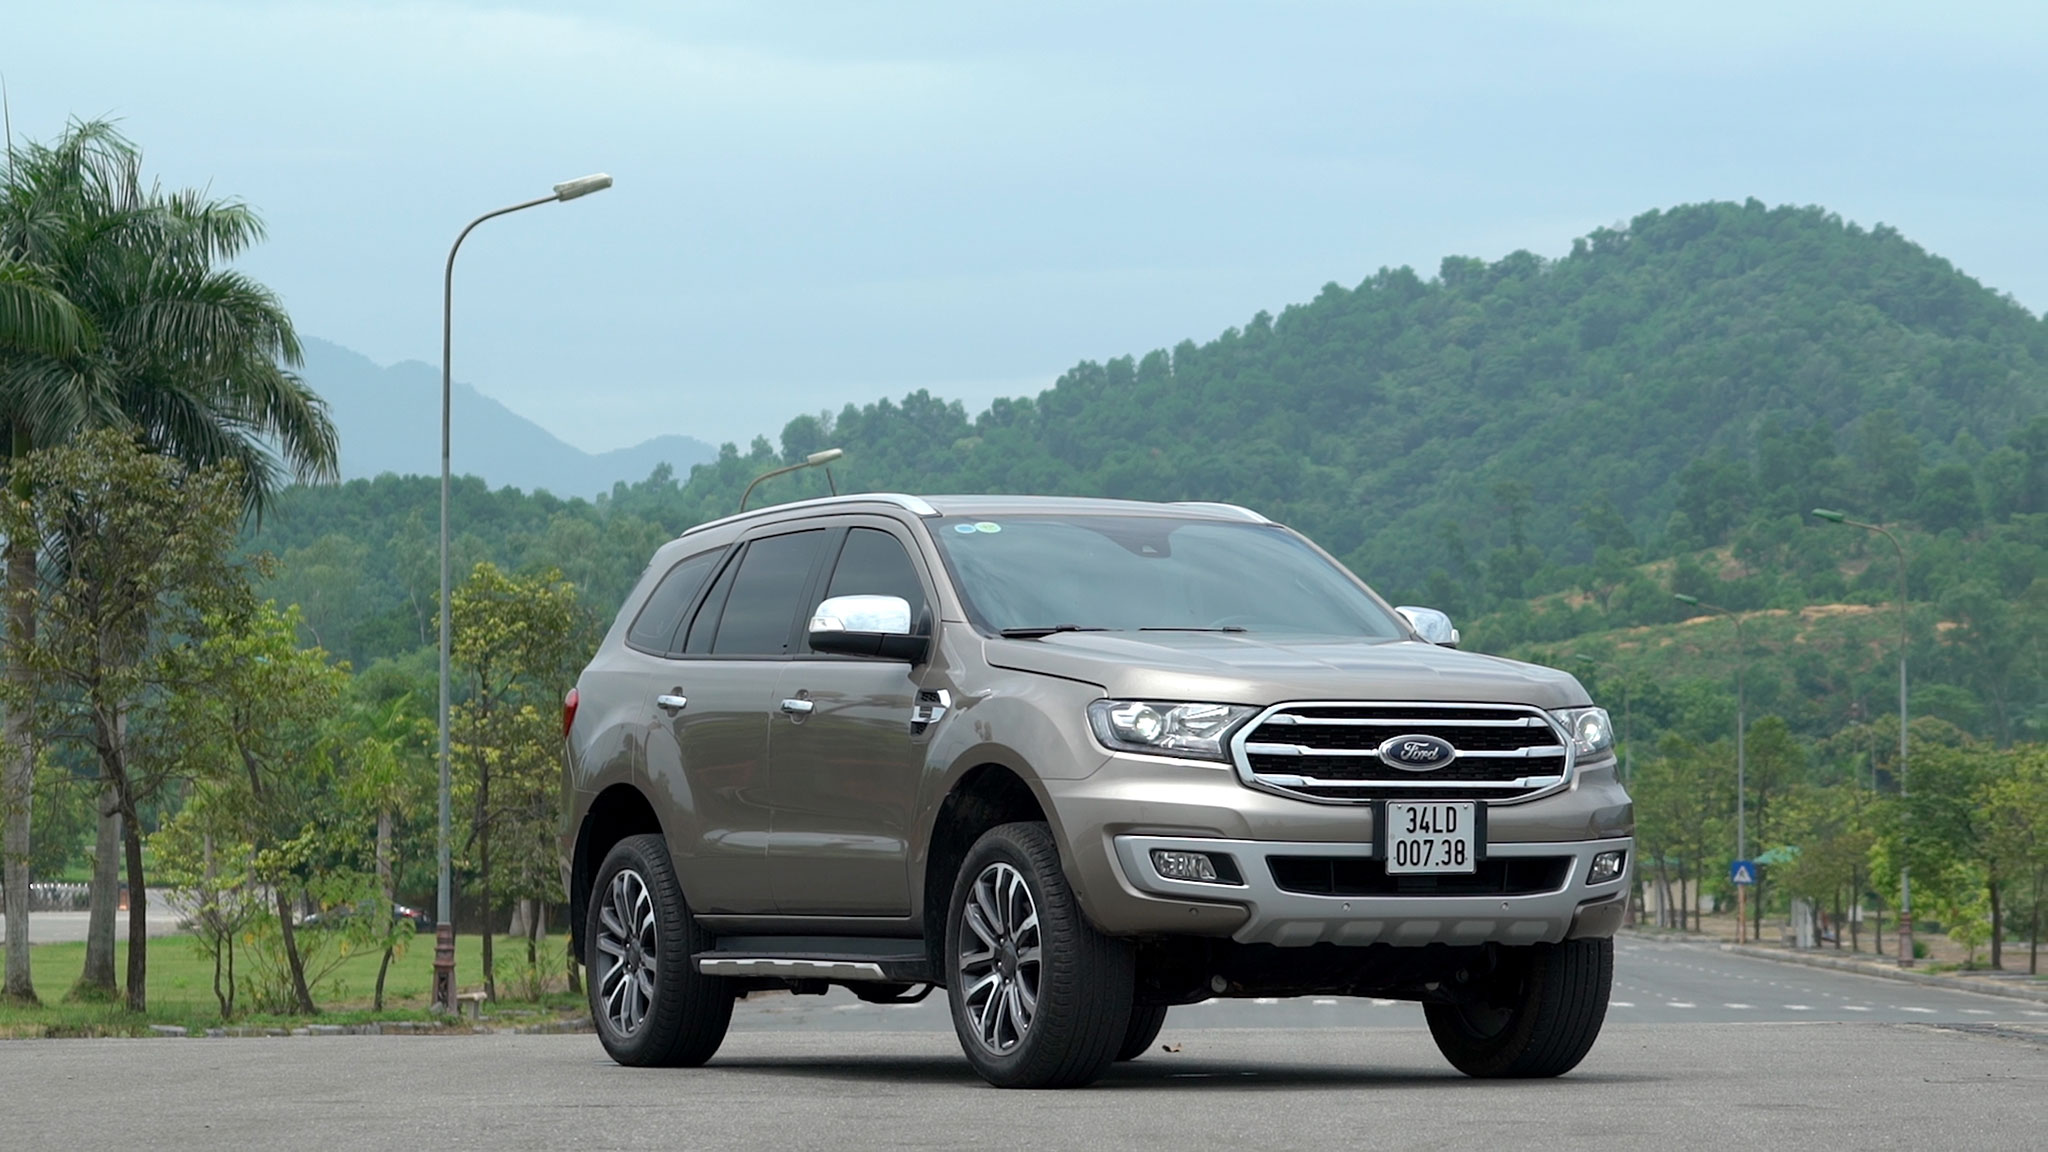 ford-everest-bi-turbo-autodaily-07.jpg